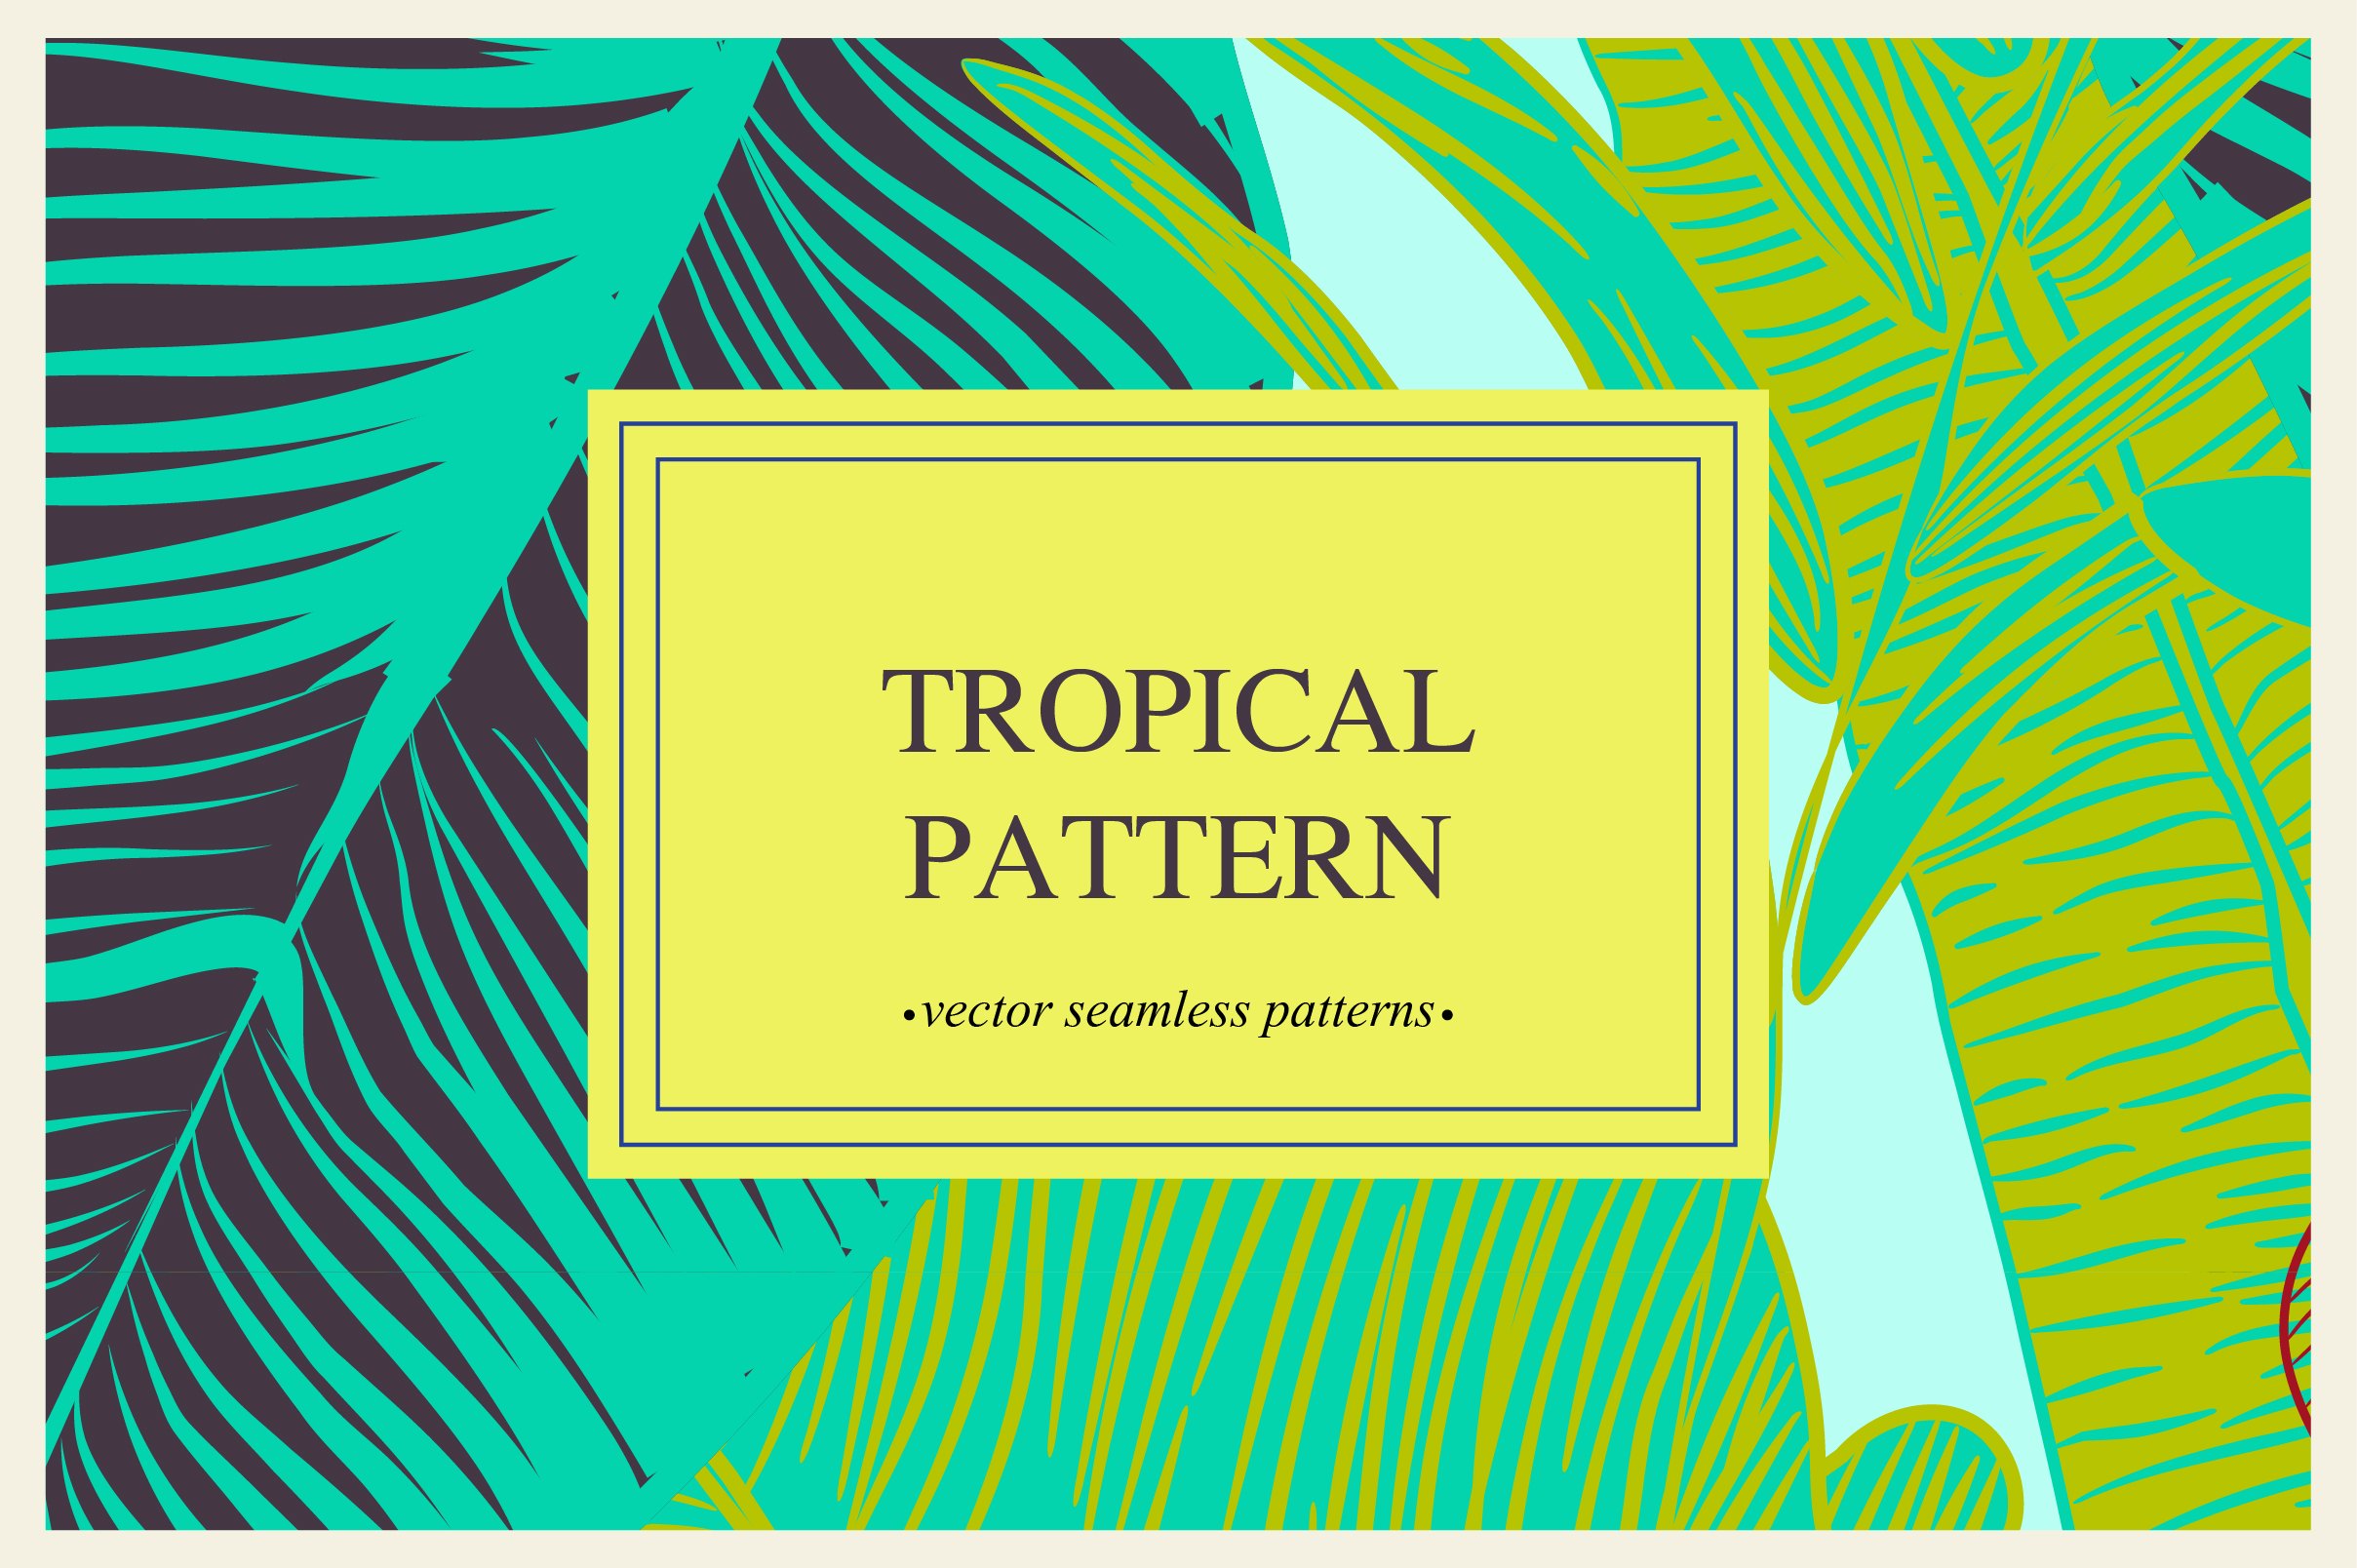 Tropical pattern example image 12